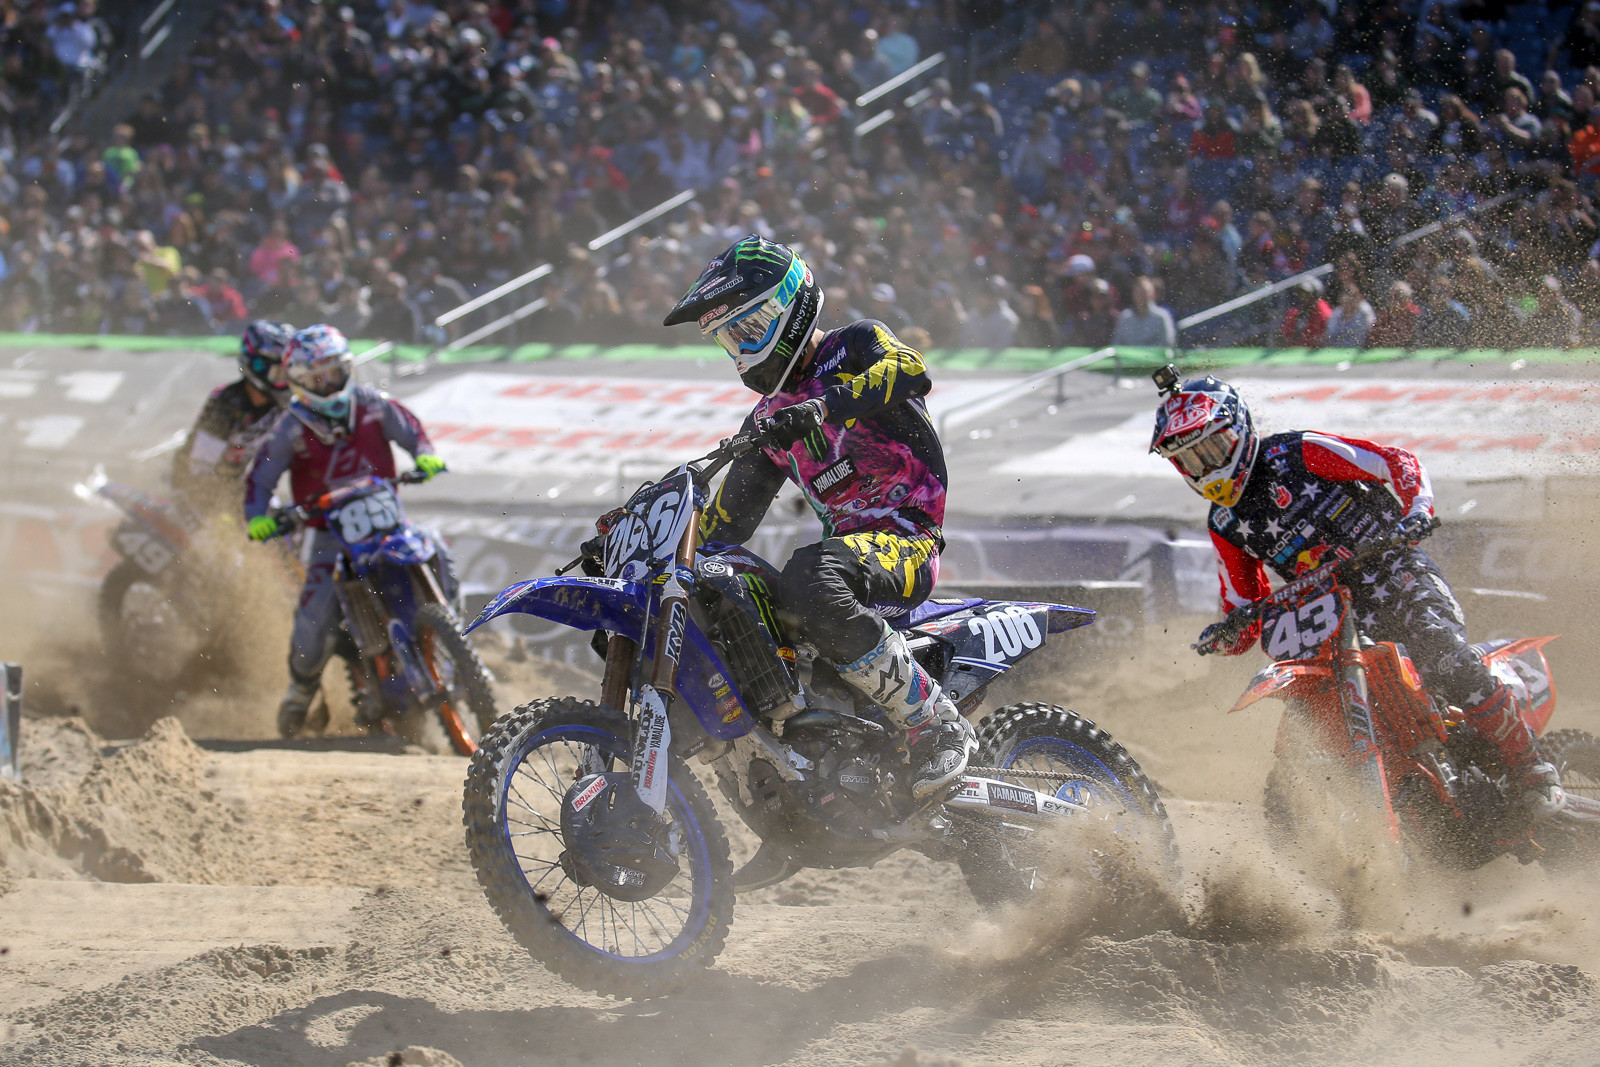 For being a 180 sand corner, the sand section was actually pretty much drama-free.